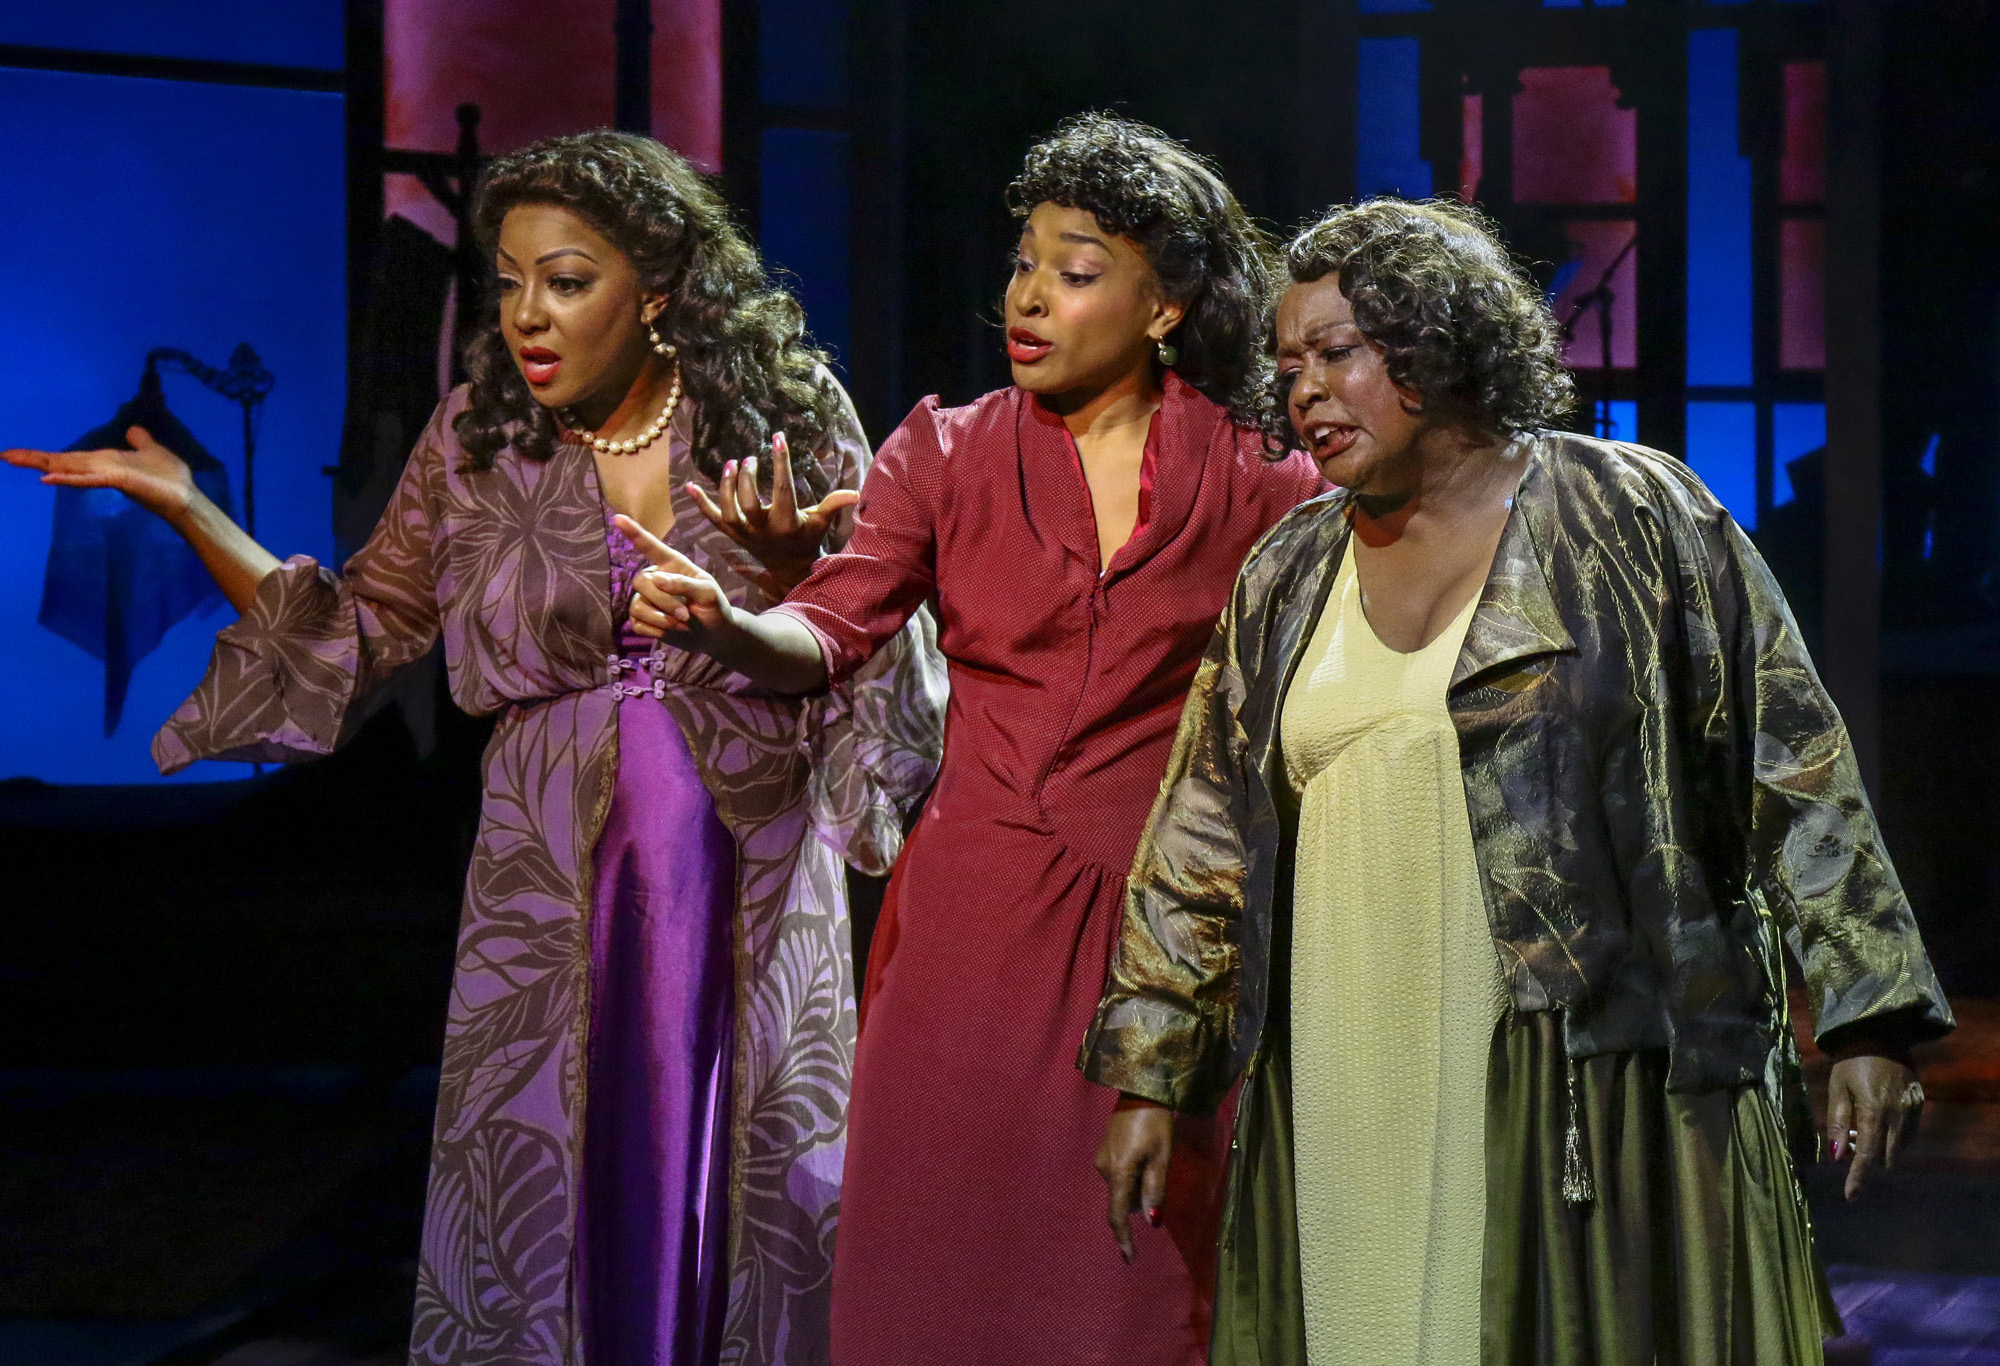 Paulette Ivory (The Woman Of The World), Bryce Charles (The Girl With A Date), Yvette Cason (The Lady From The Road). BLUES IN THE NIGHT. Photo Credit: Lawrence K. Ho.